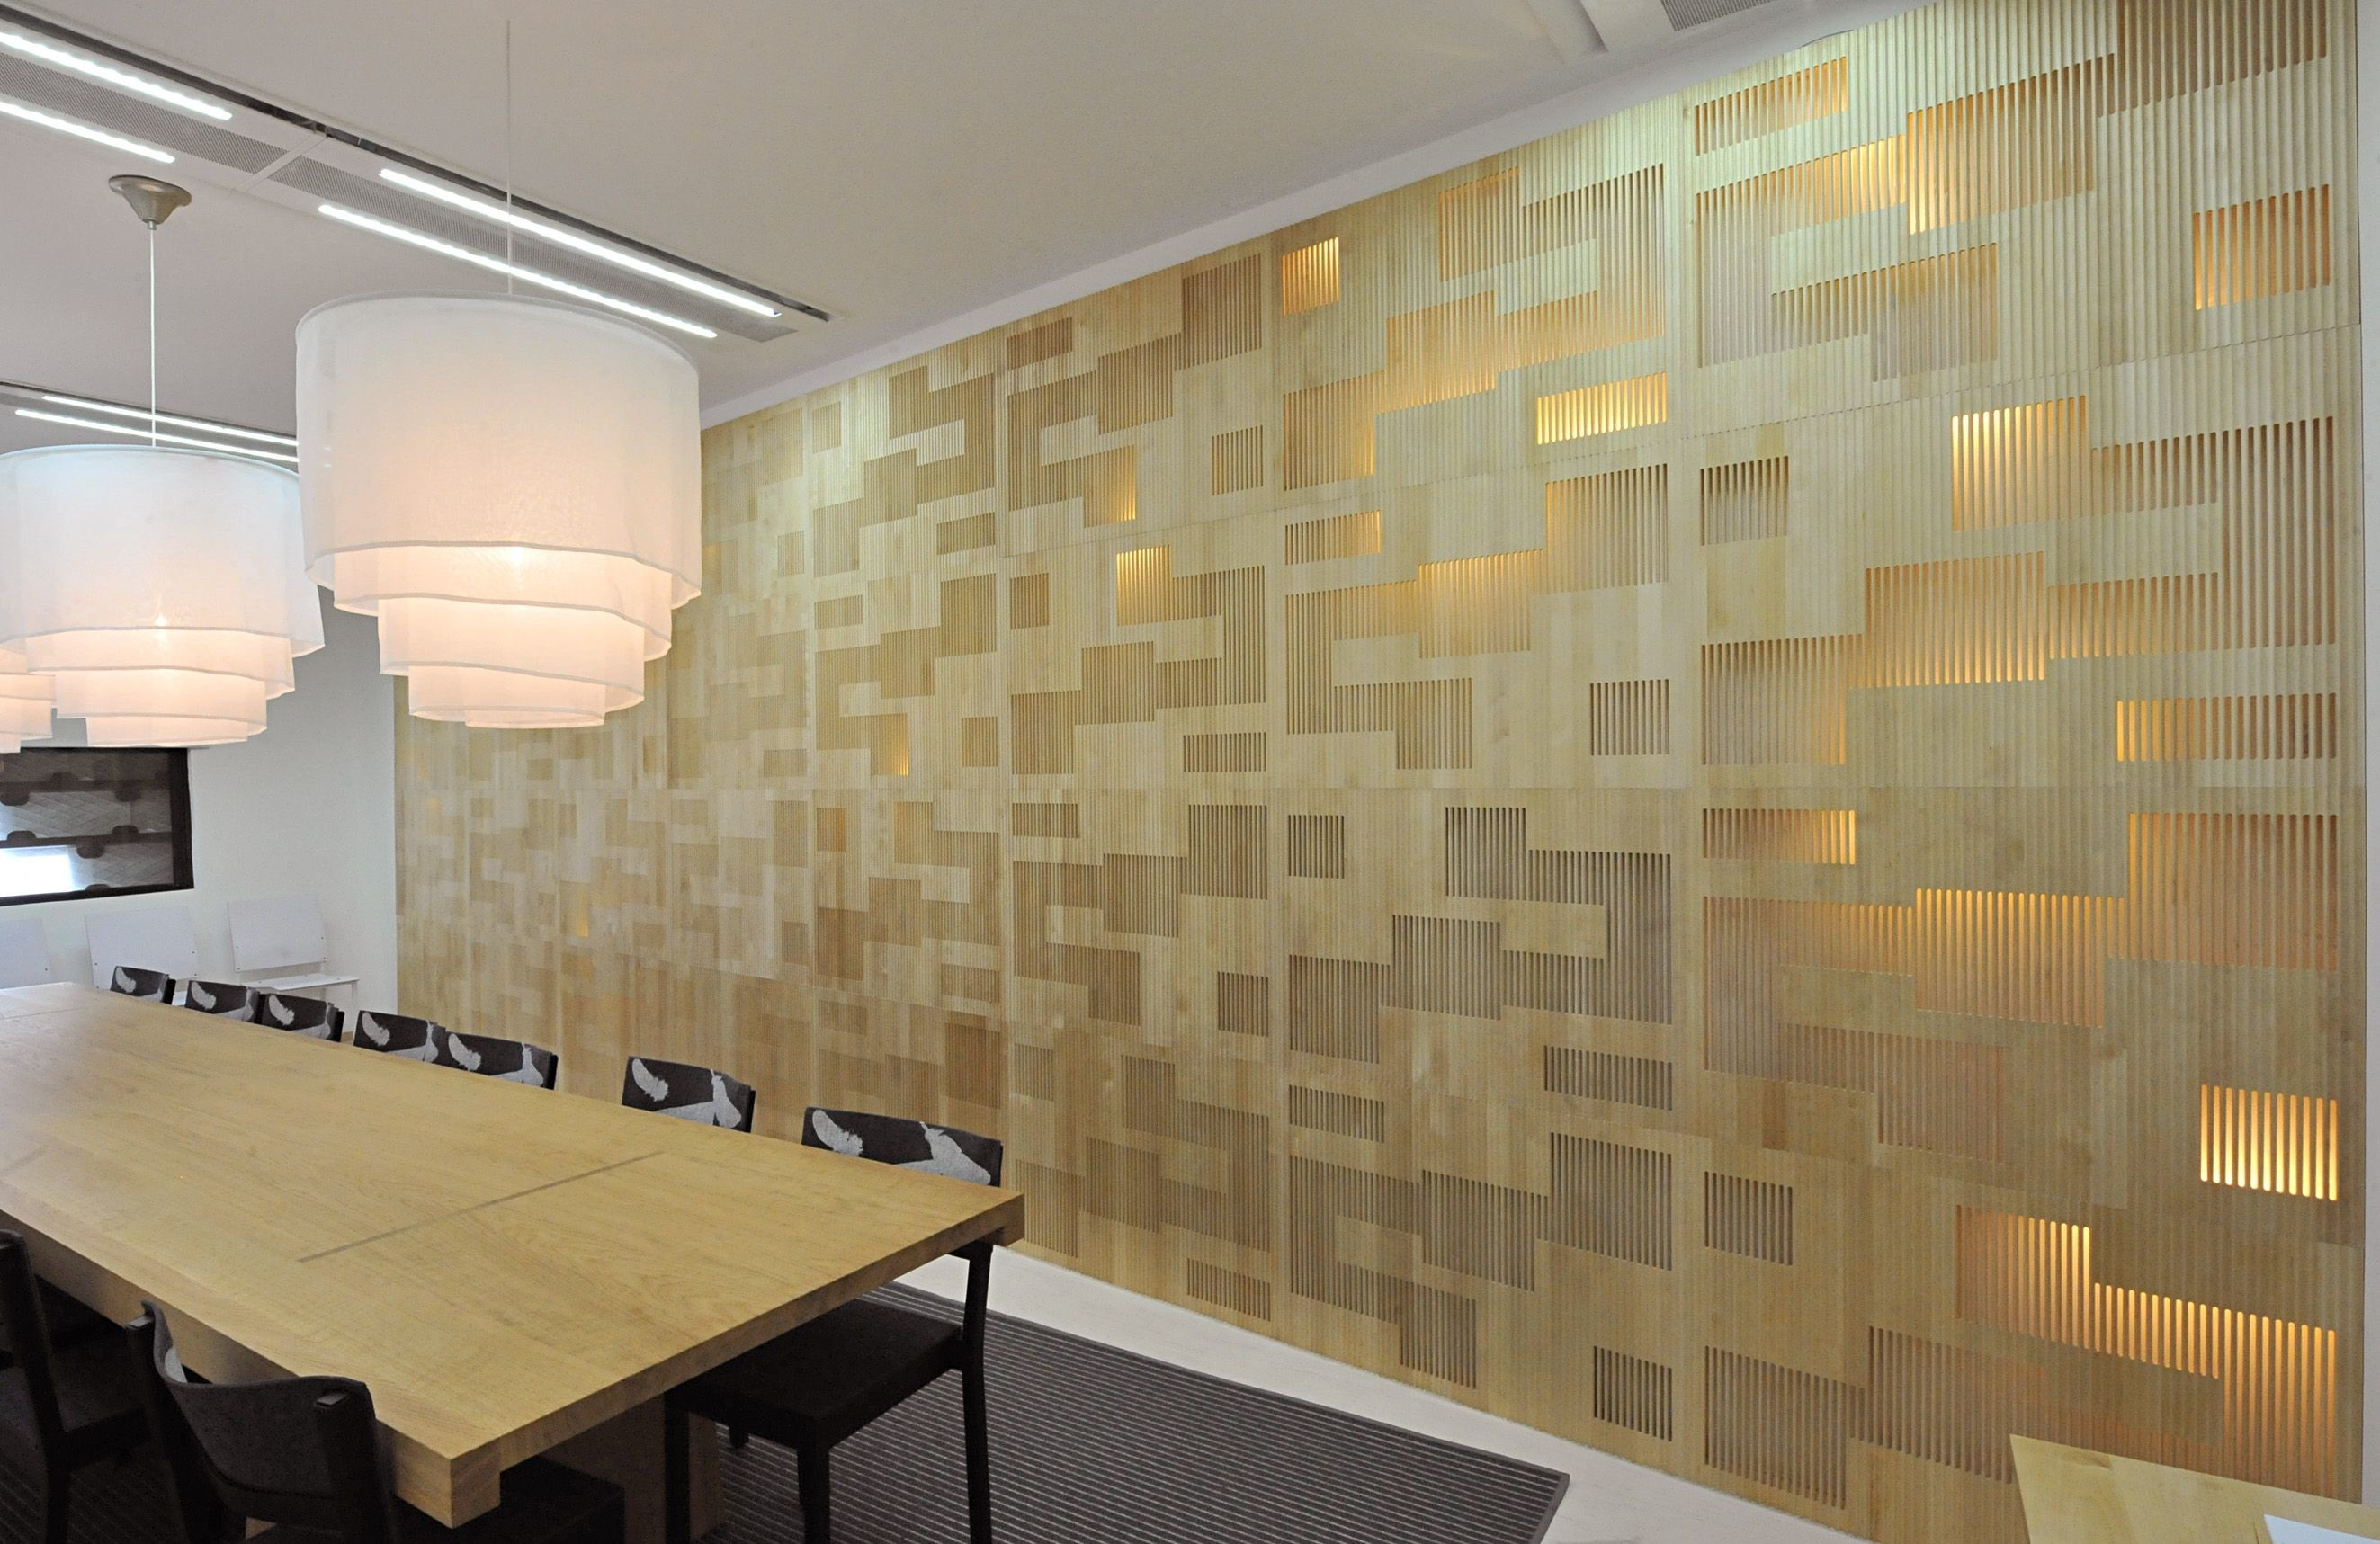 2646x1717 Inspired Noise UK provide an extensive range of Soundproof & Acoustic Wood  Panels. Including the Ideawood, Ideacustic & Idamovil Wood Panels.